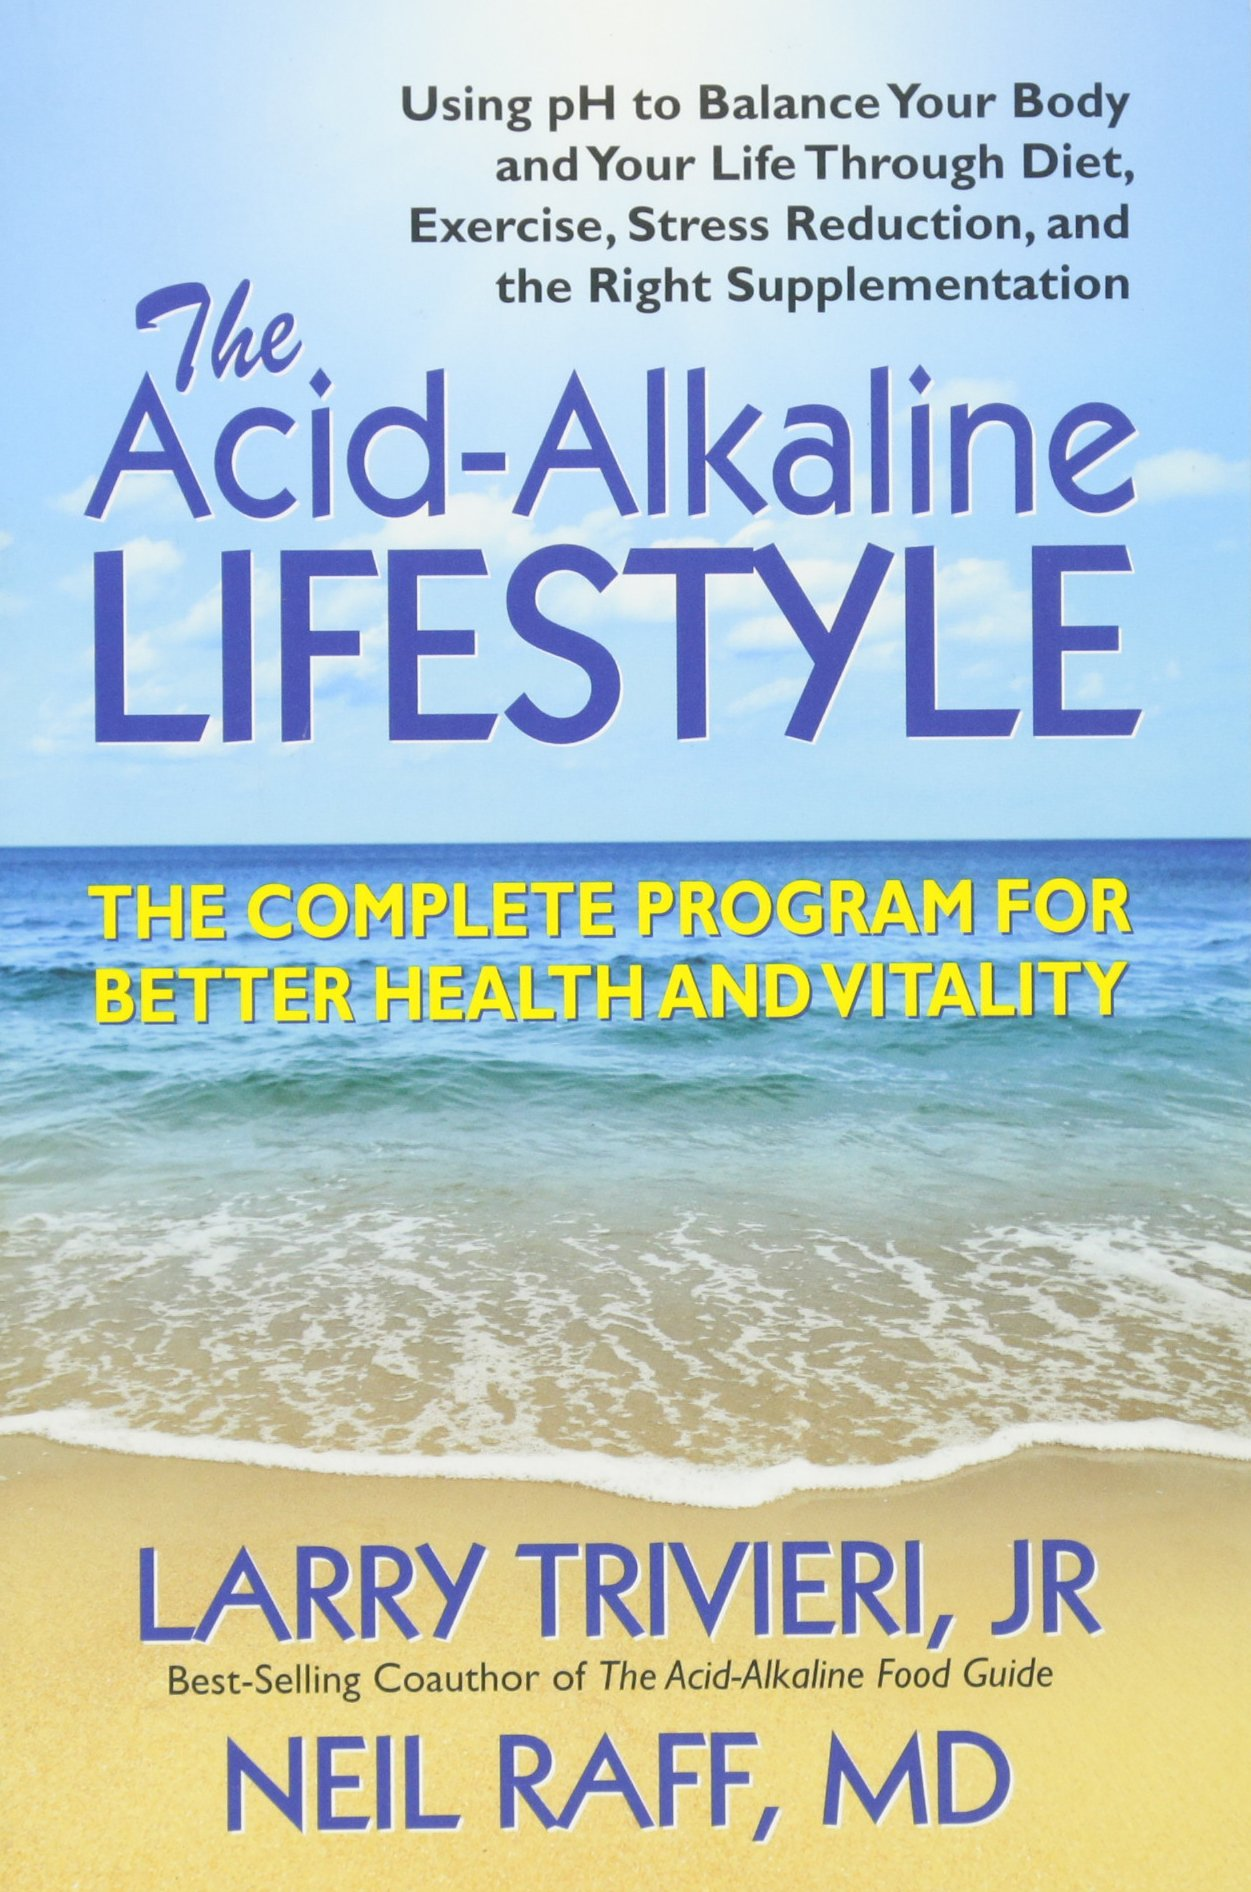 Download The Acid-Alkaline Lifestyle: The Complete Program For Better Health and Vitality PDF